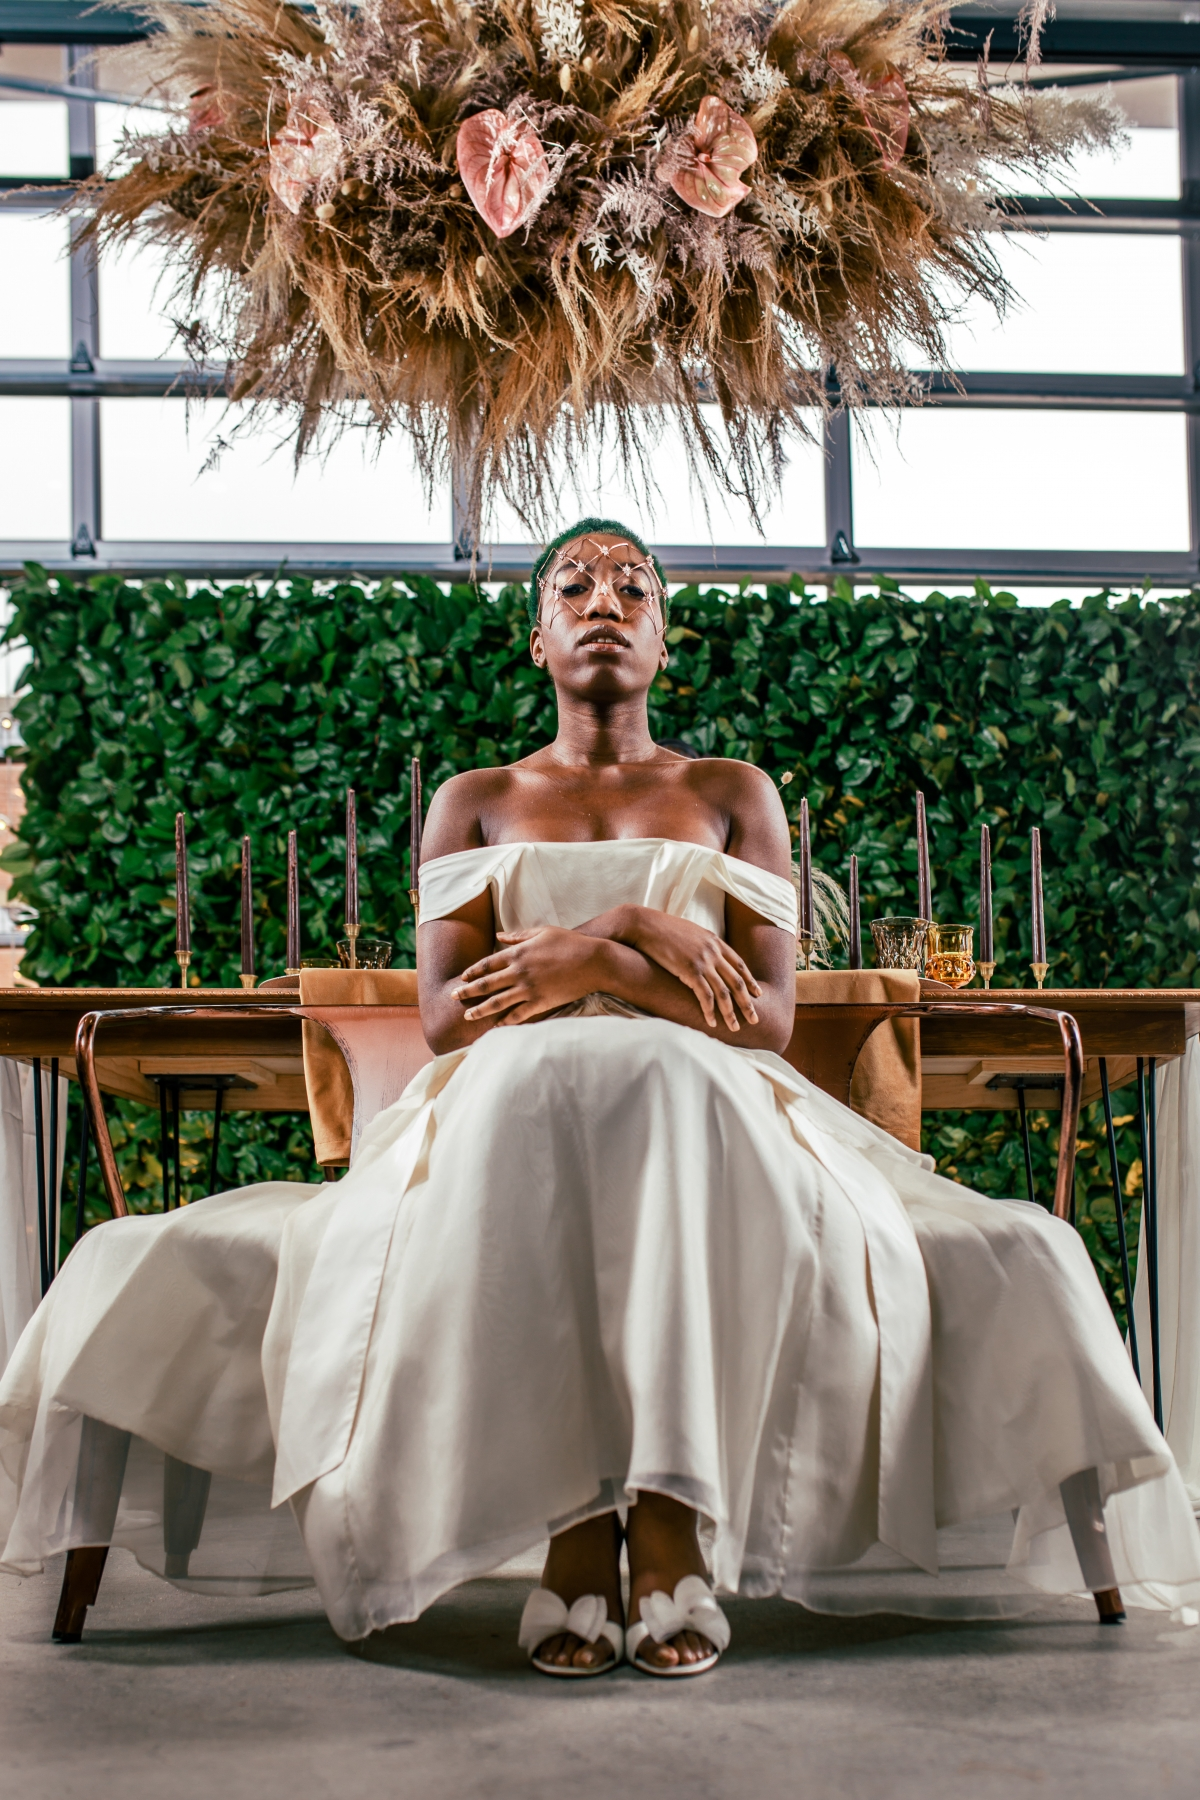 Lush Fantasy Chicago Wedding Inspiration Lakeshore in Love Tuan B 13